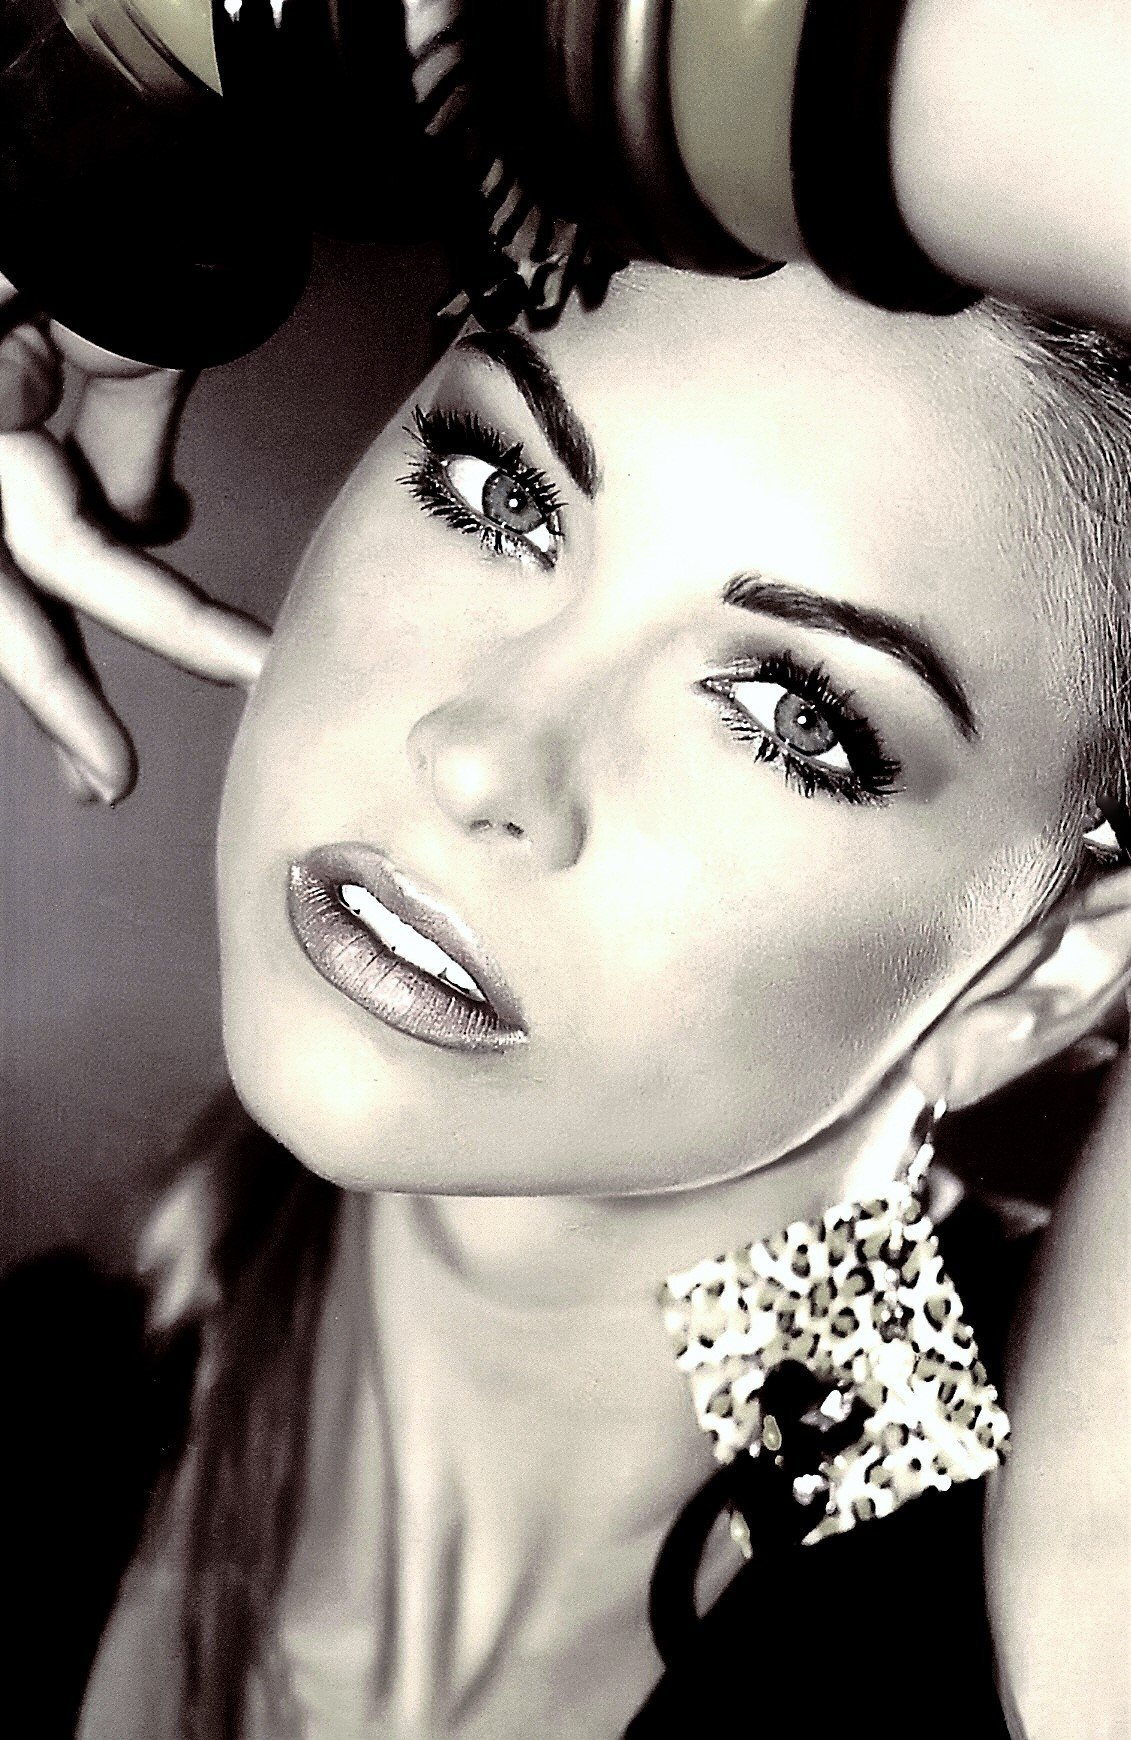 MISS SC-USA --  COURTNEY TURNER  She placed top 8 at MISS USA.